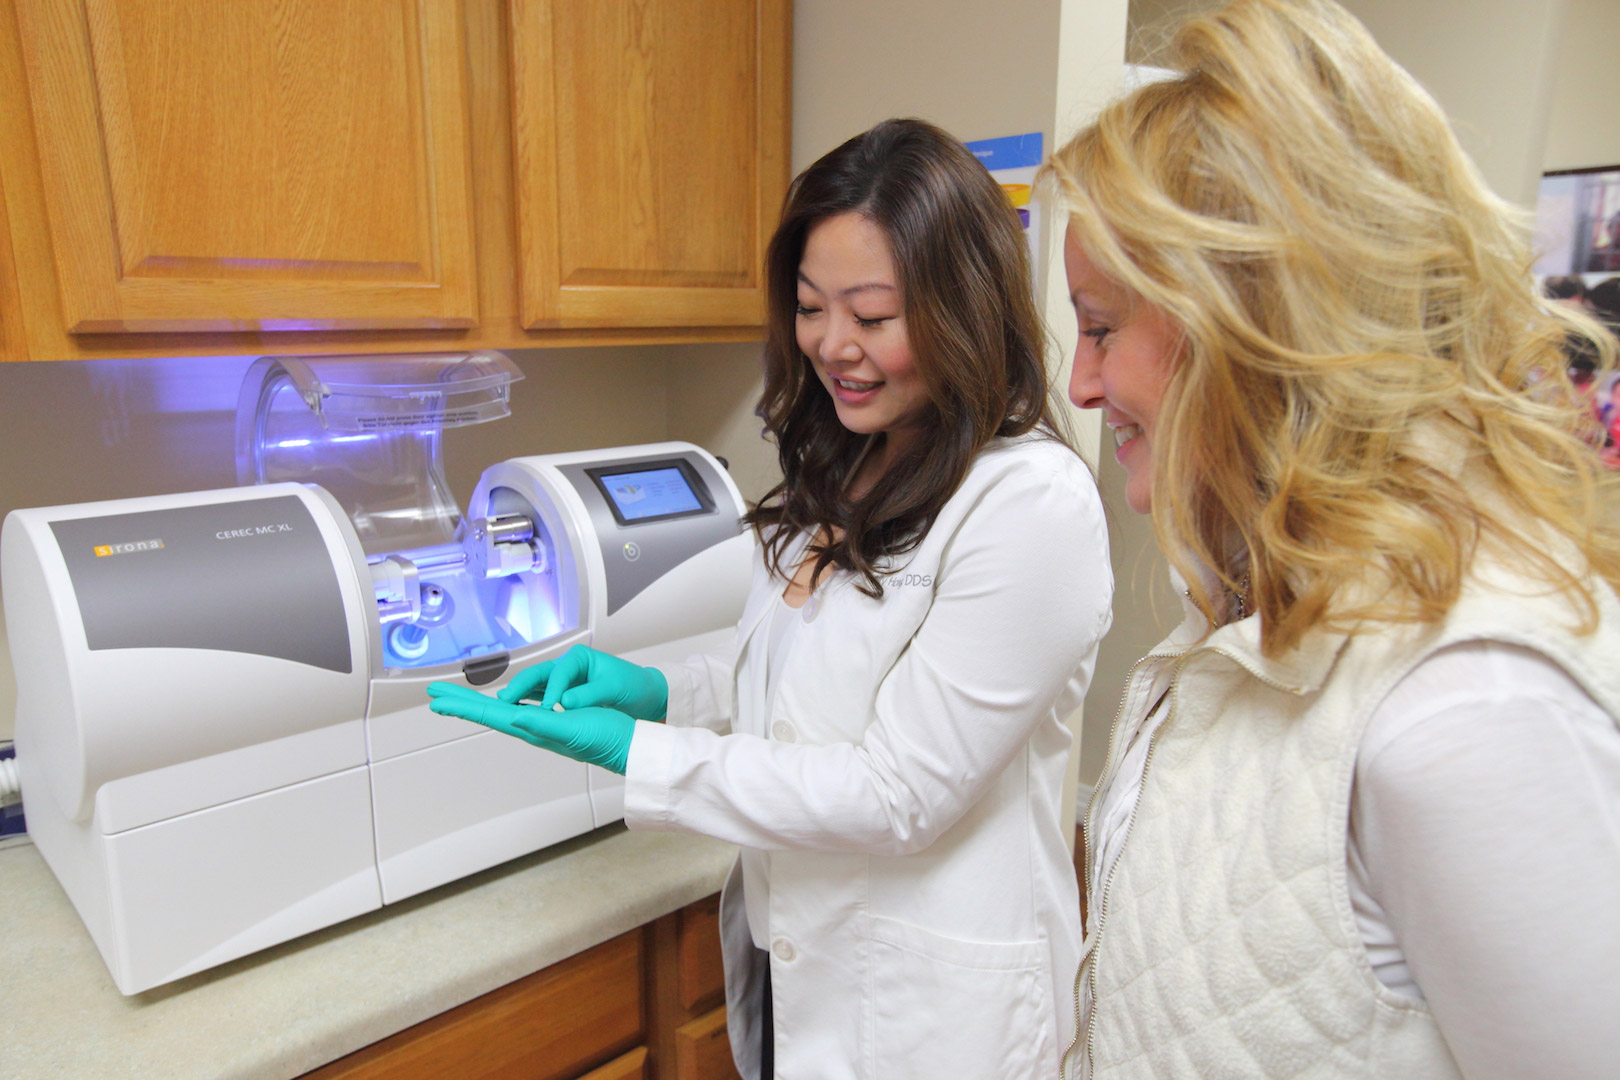 Dr. Kelly Hong with CEREC Same Day Crowns at Kelly Smile Dentistry in Victorville, CA.